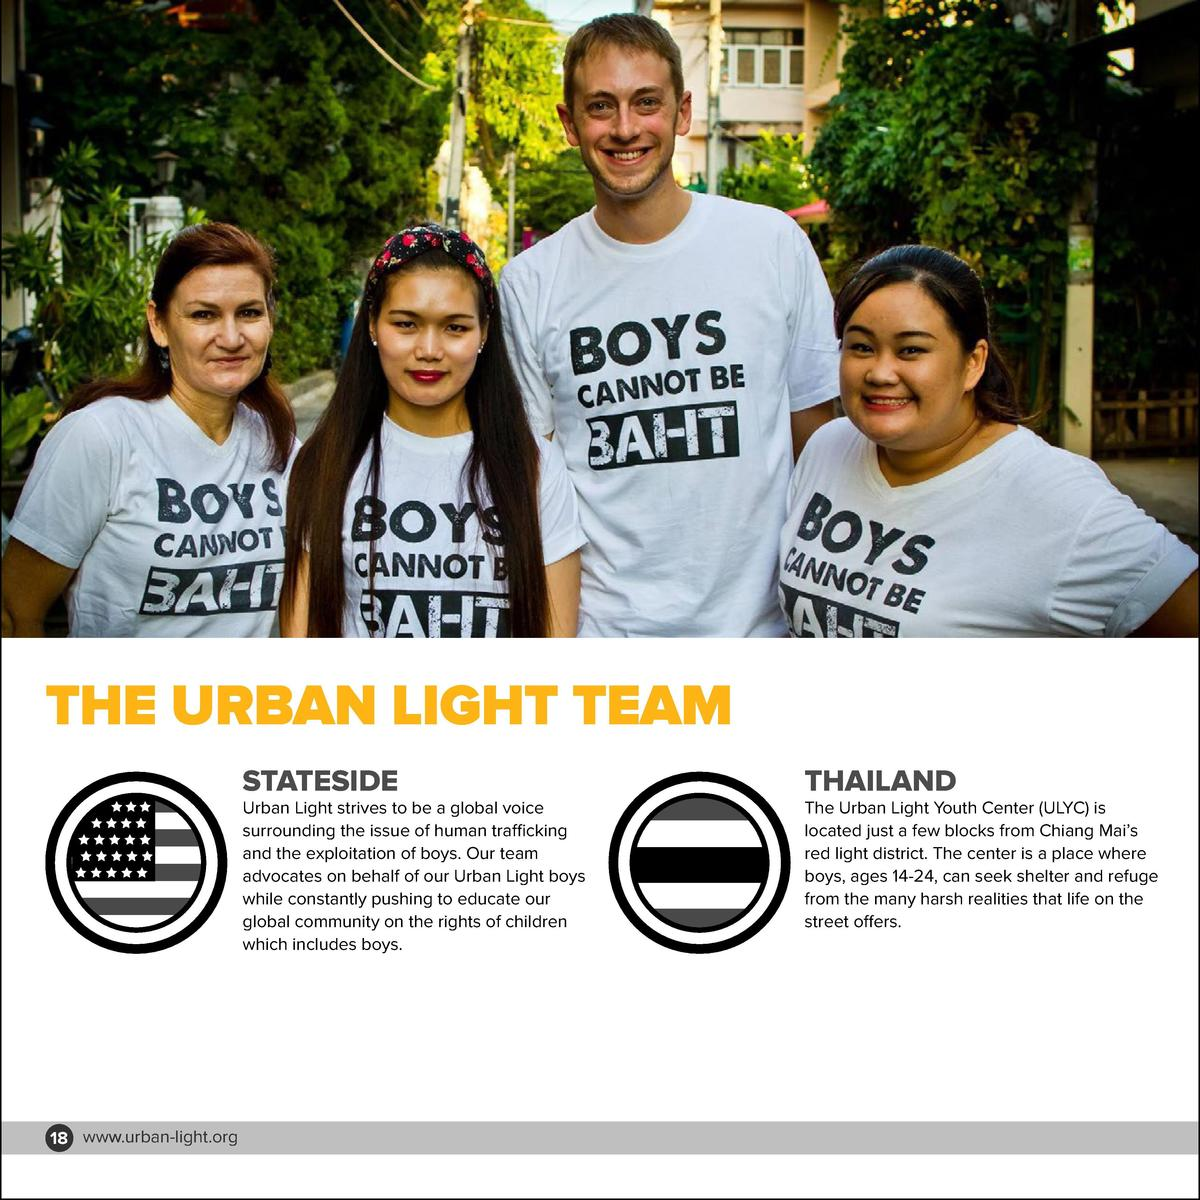 THE URBAN LIGHT TEAM STATESIDE  Urban Light strives to be a global voice surrounding the issue of human trafficking and th...